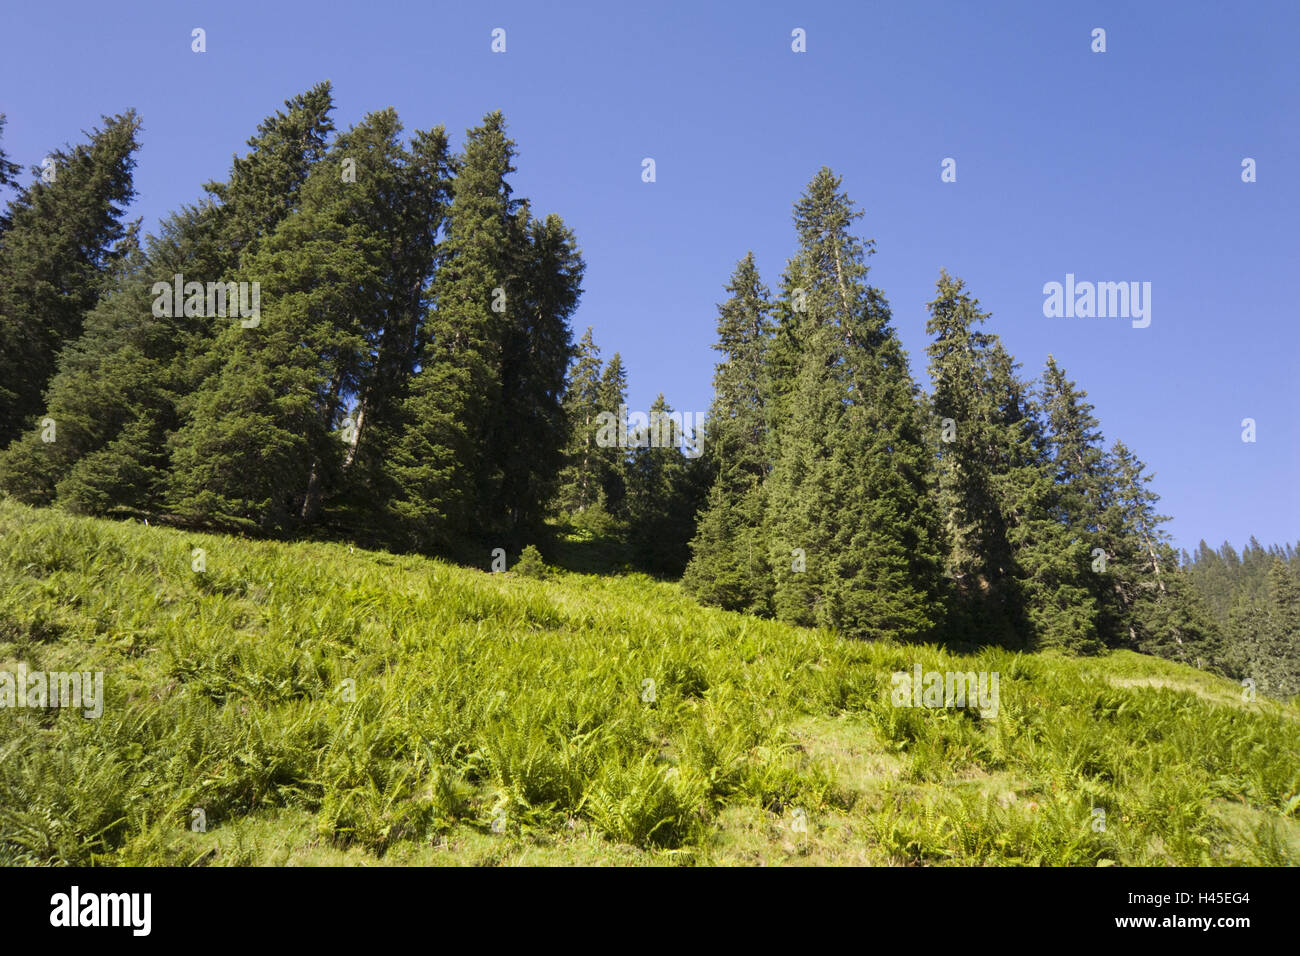 Mountainside, conifers, ferns, - Stock Image